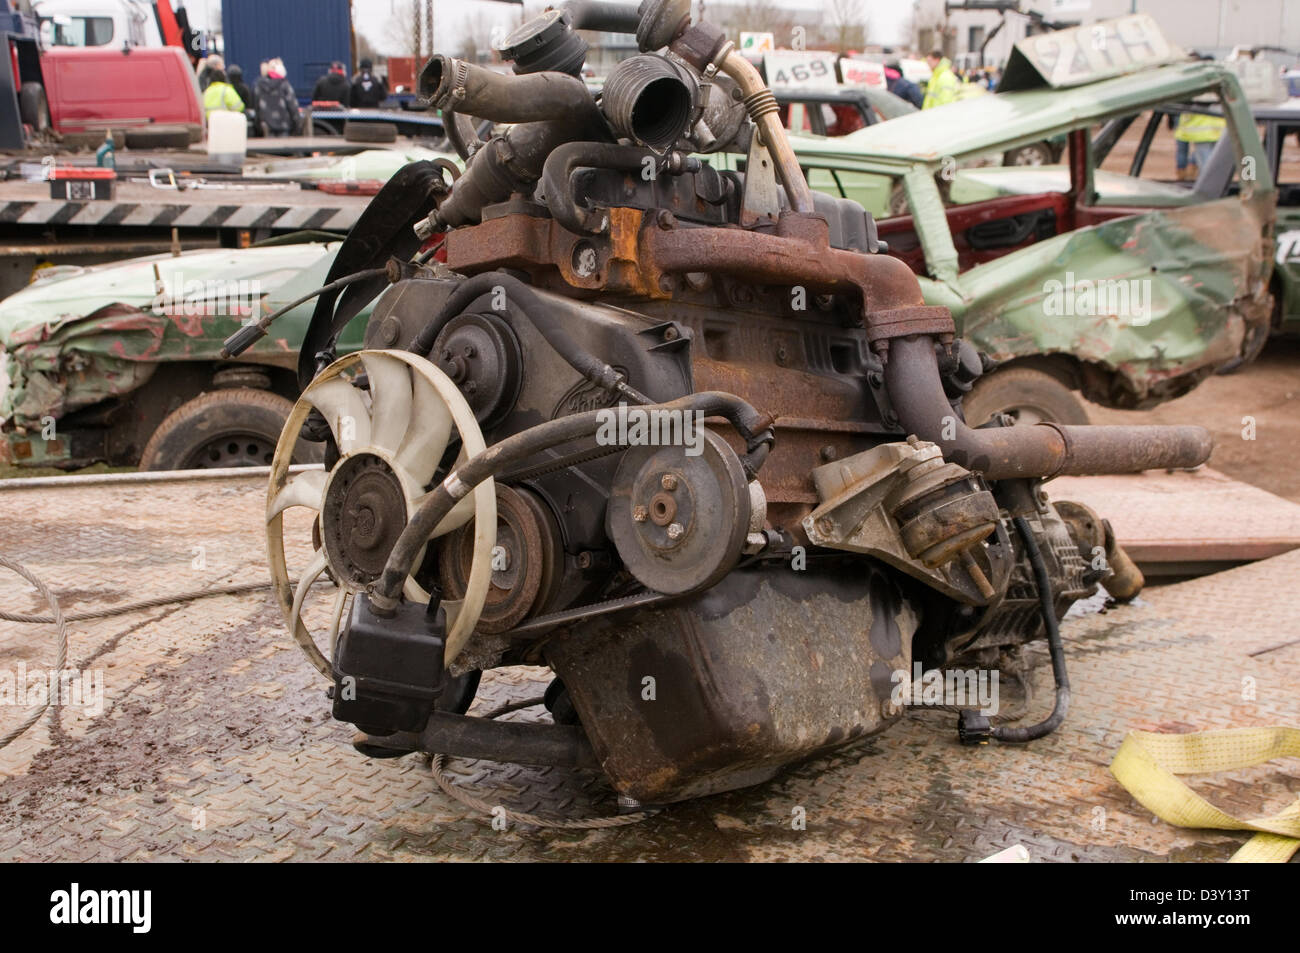 scrap engine car cars engines metal old junk scrapyard scrapyards ...